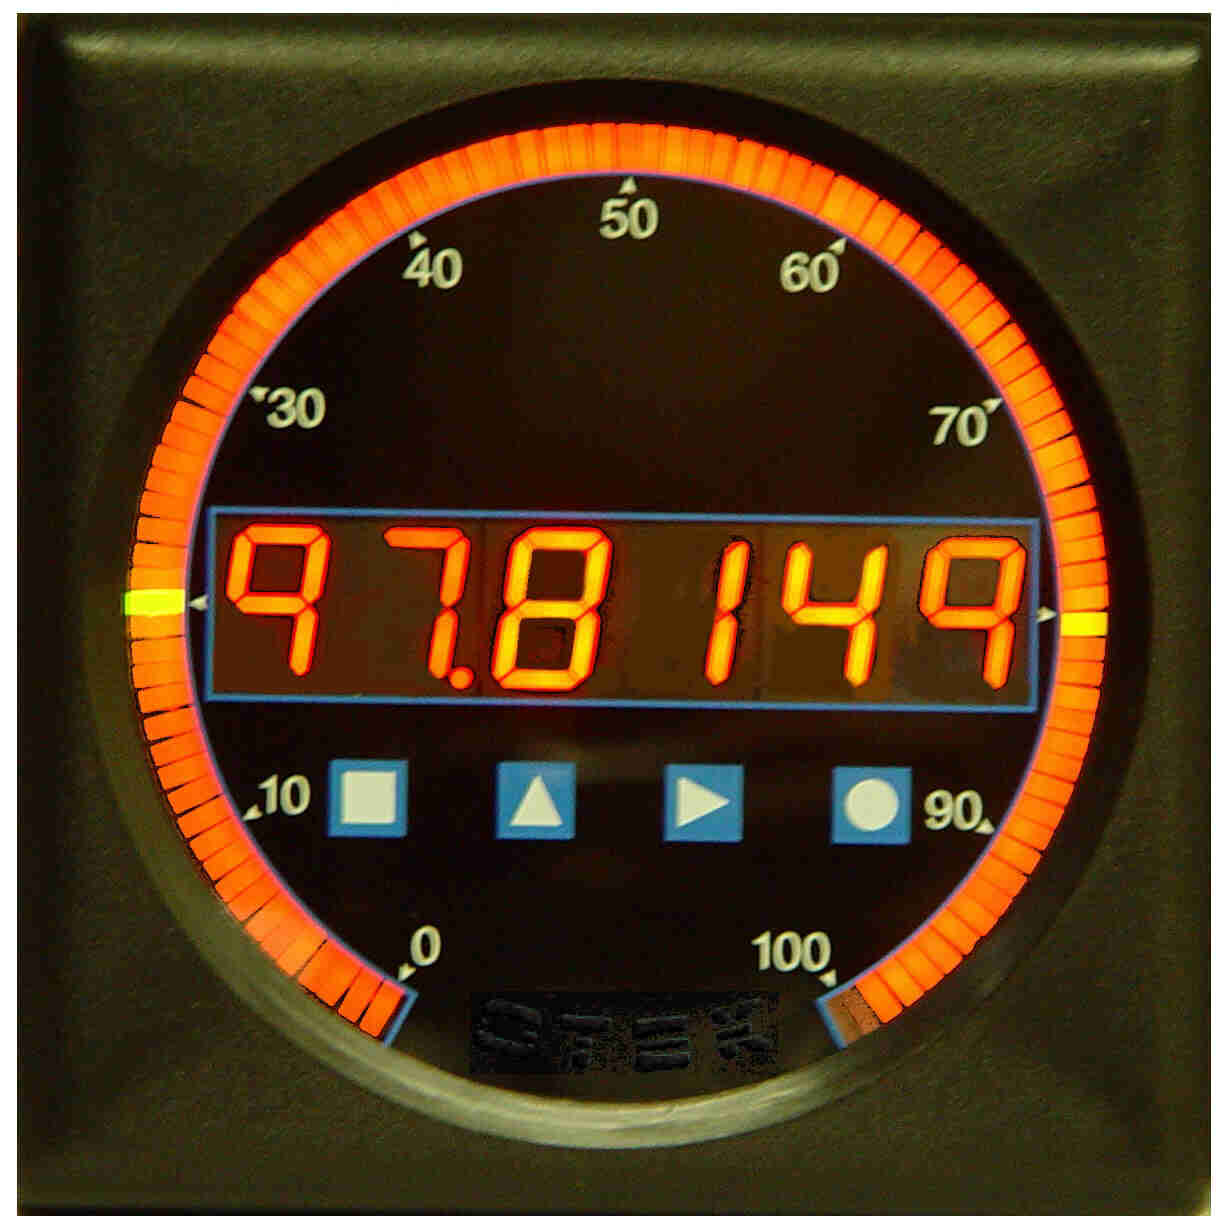 ANSI size Switchboard  Bargraph meter with 6 digit LED display